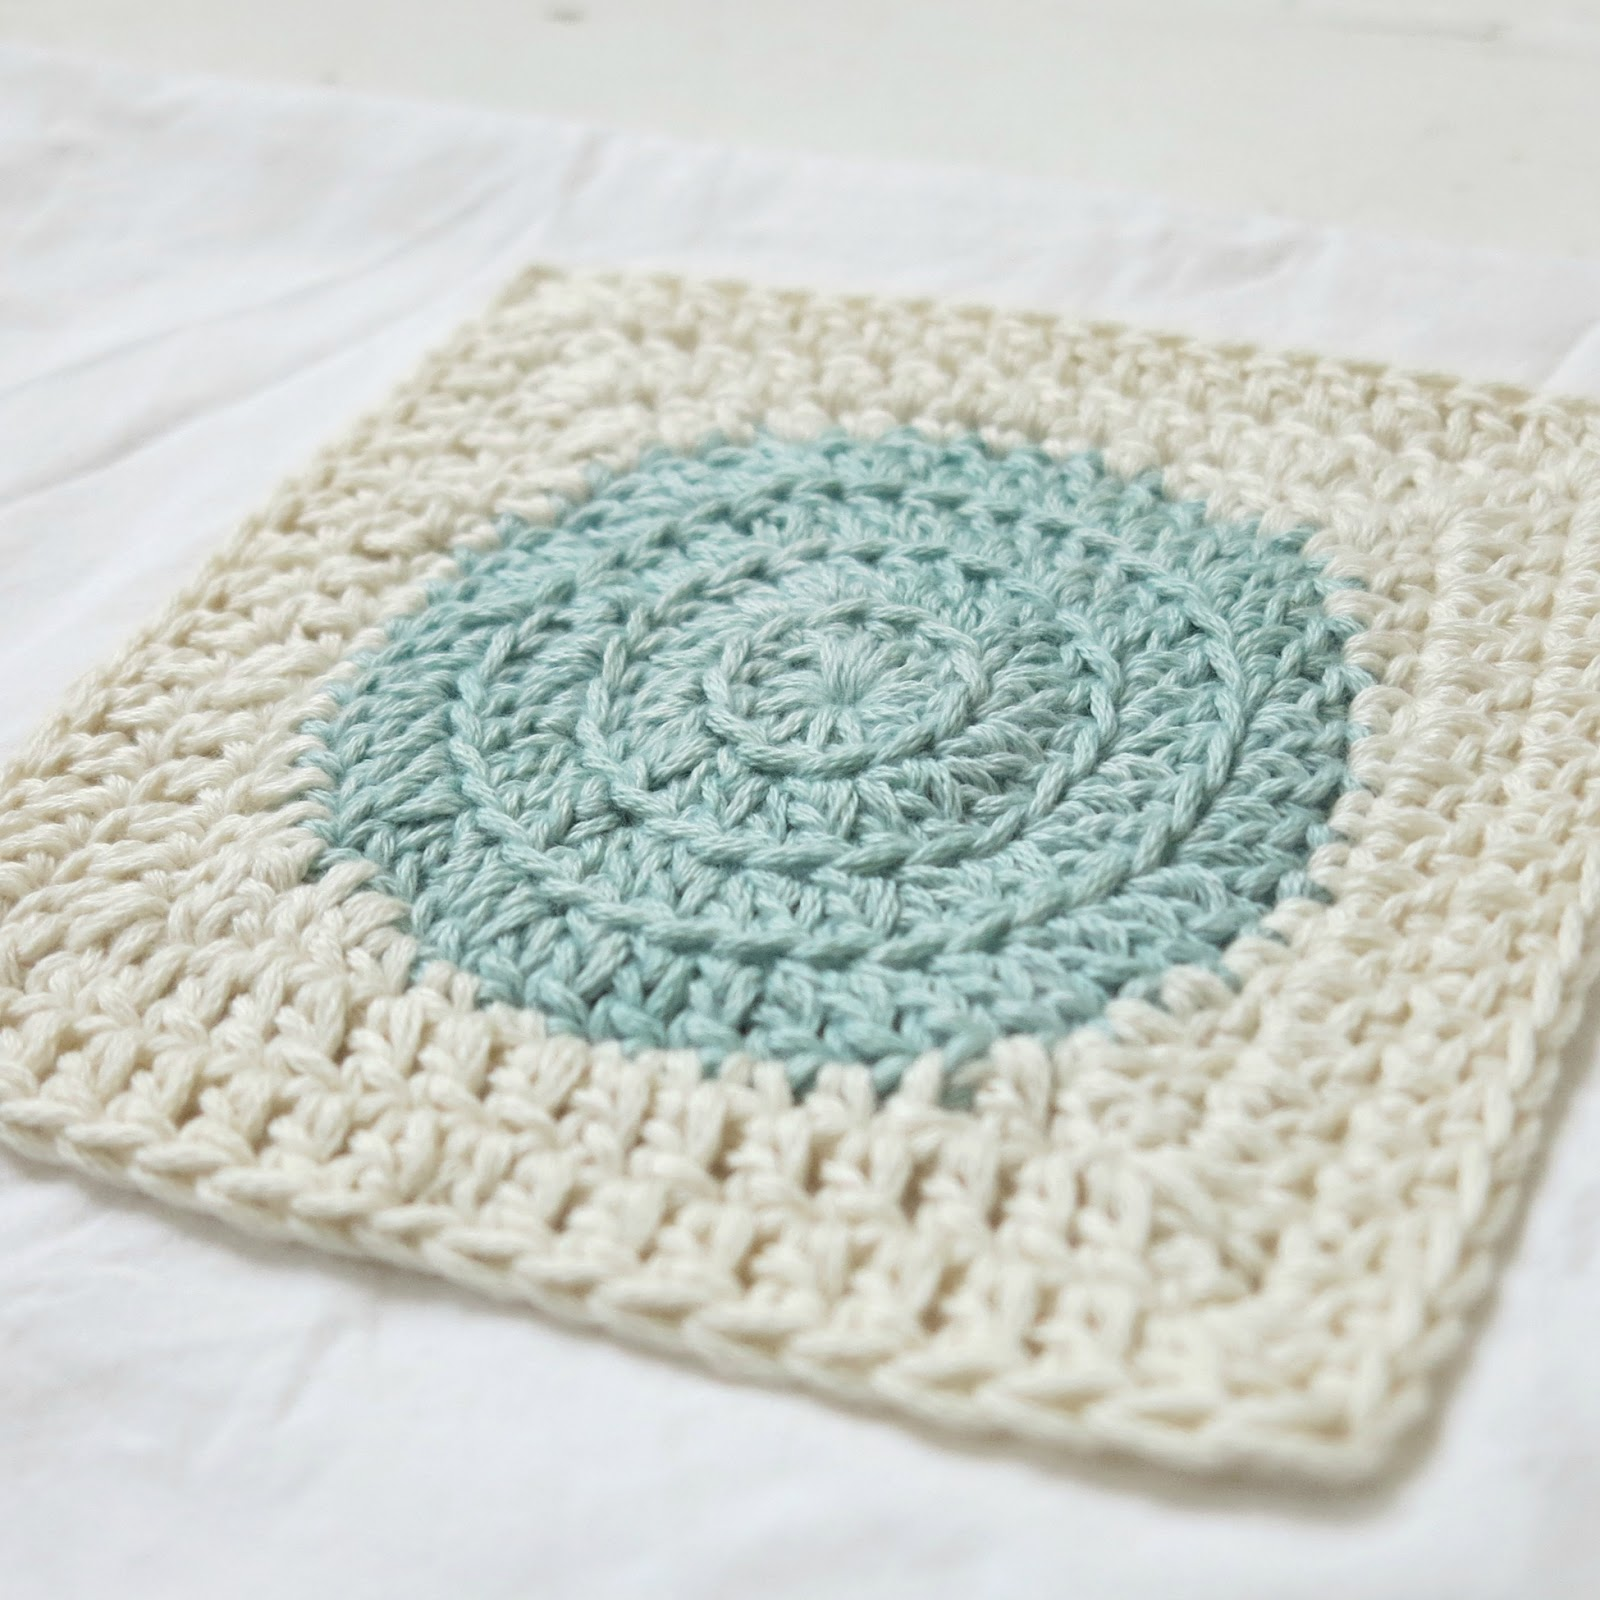 ByHaafner * crochet : October 2015